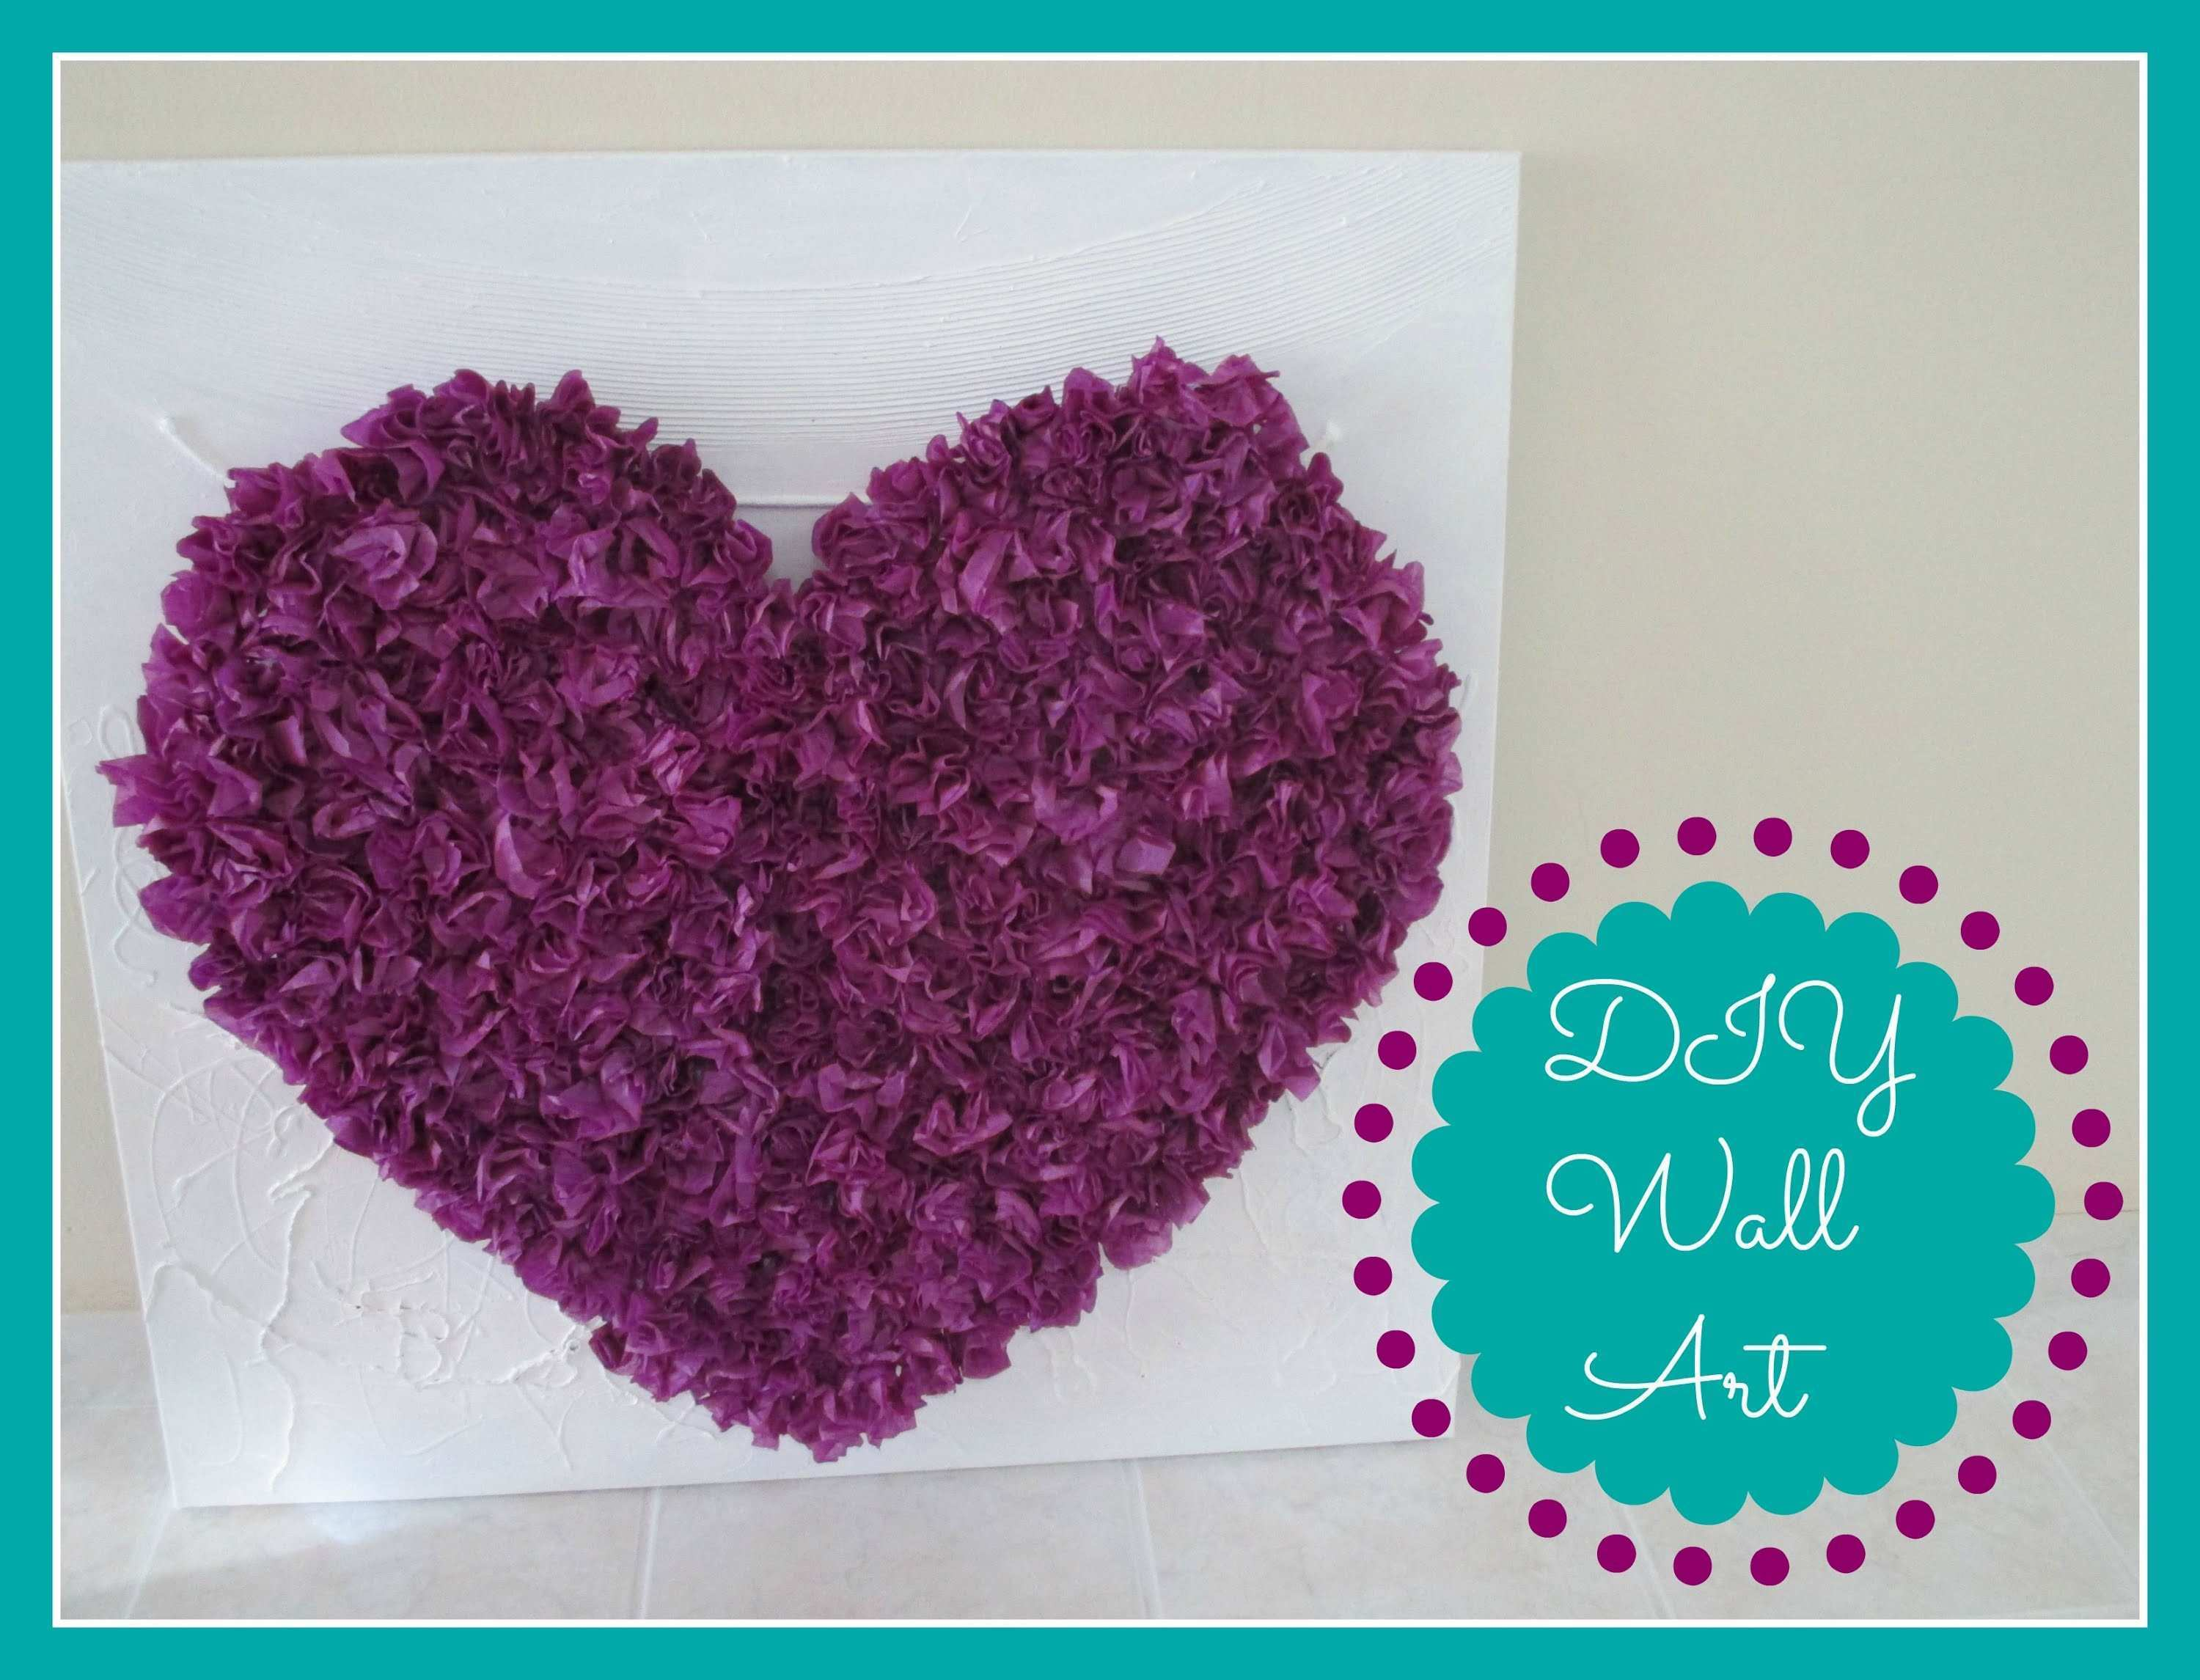 Wall Decoration Ideas With Crepe Paper Vines With Wall Decoration